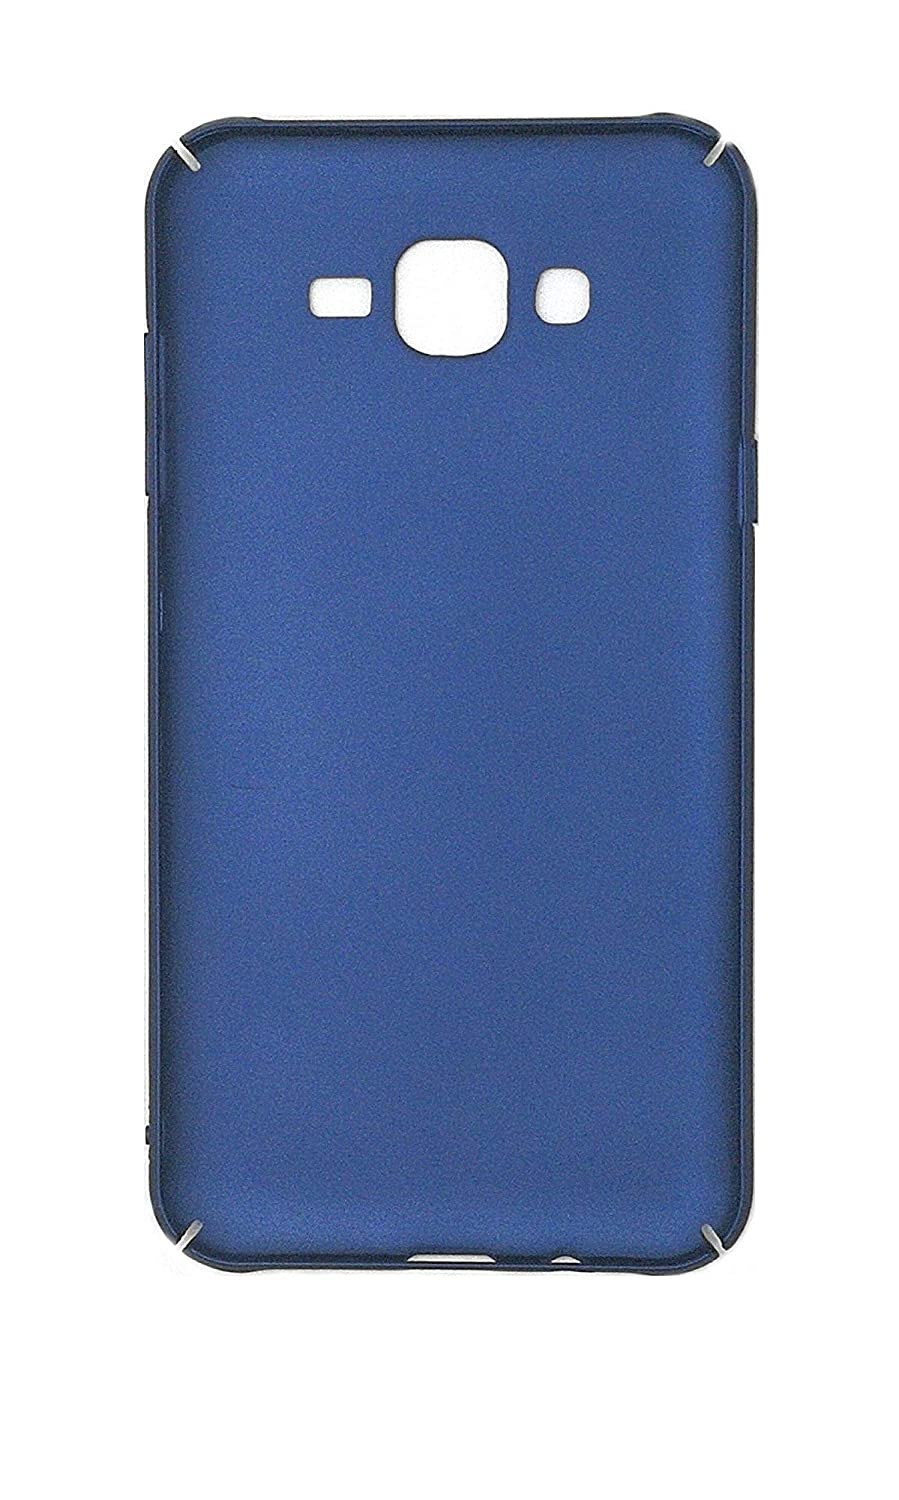 Case for Samsung SM-J701M/DS Galaxy J7 Neo 2017 Duos/SM-J701M SM-J701MT (Samsung J701) Case PC Hard Cover Blue